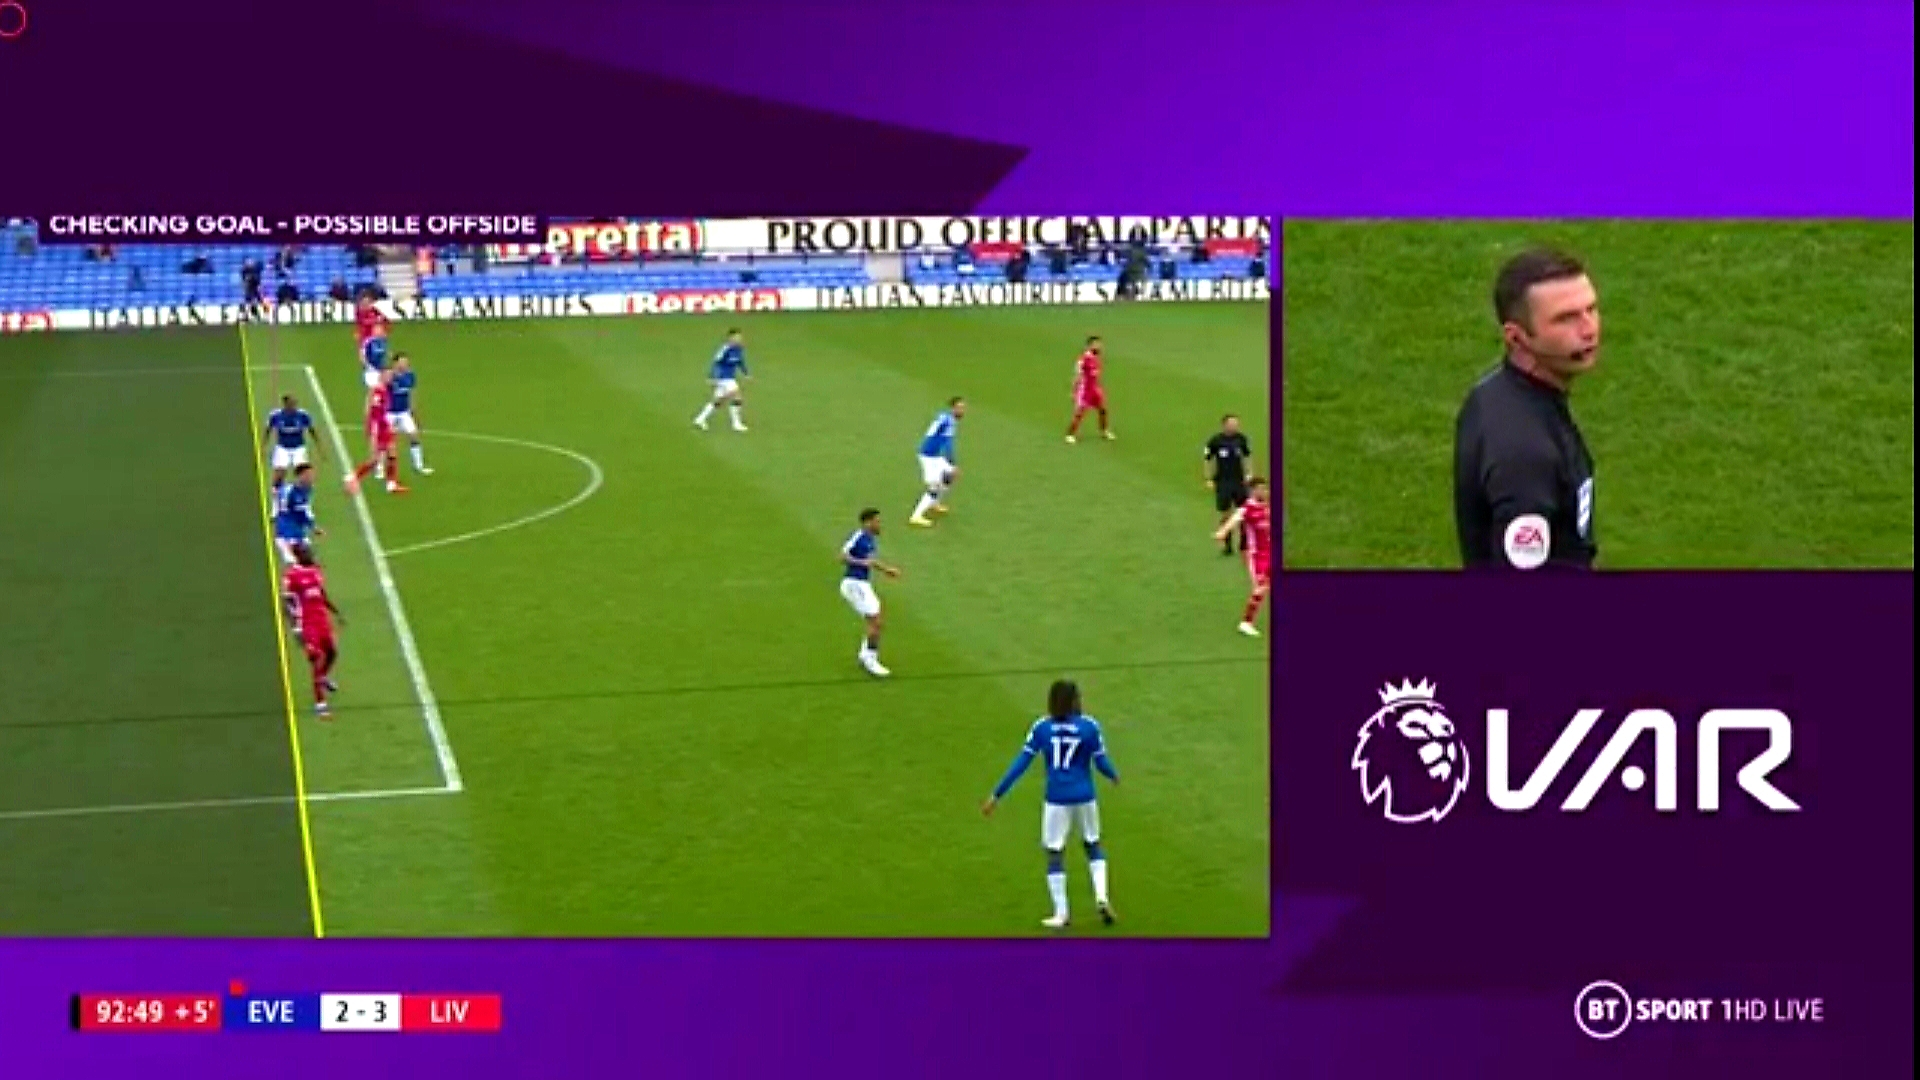 VAR denies Liverpool late winner against Everton, ruled out Jordan Henderson's strike.